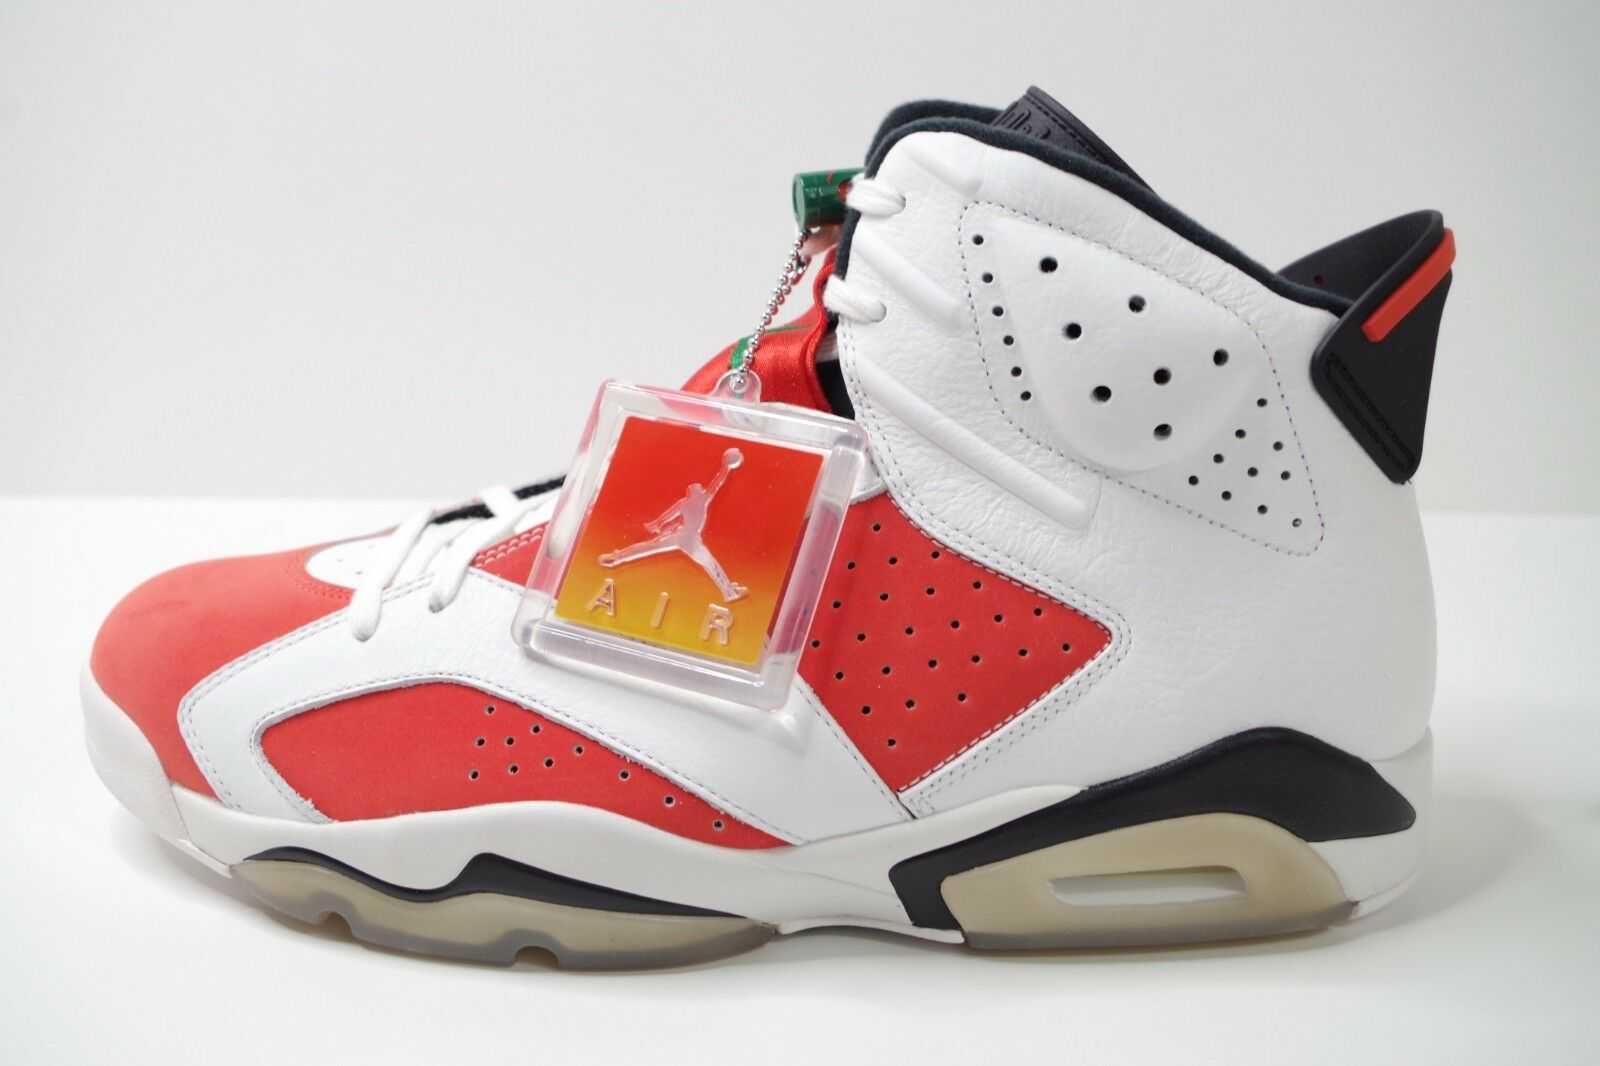 wholesale dealer dbcbc 0b46c NIKE AIR JORDAN 6 Rétro GATORADE Blanc Taille Taille Taille US 13 384664  145 ae4a93